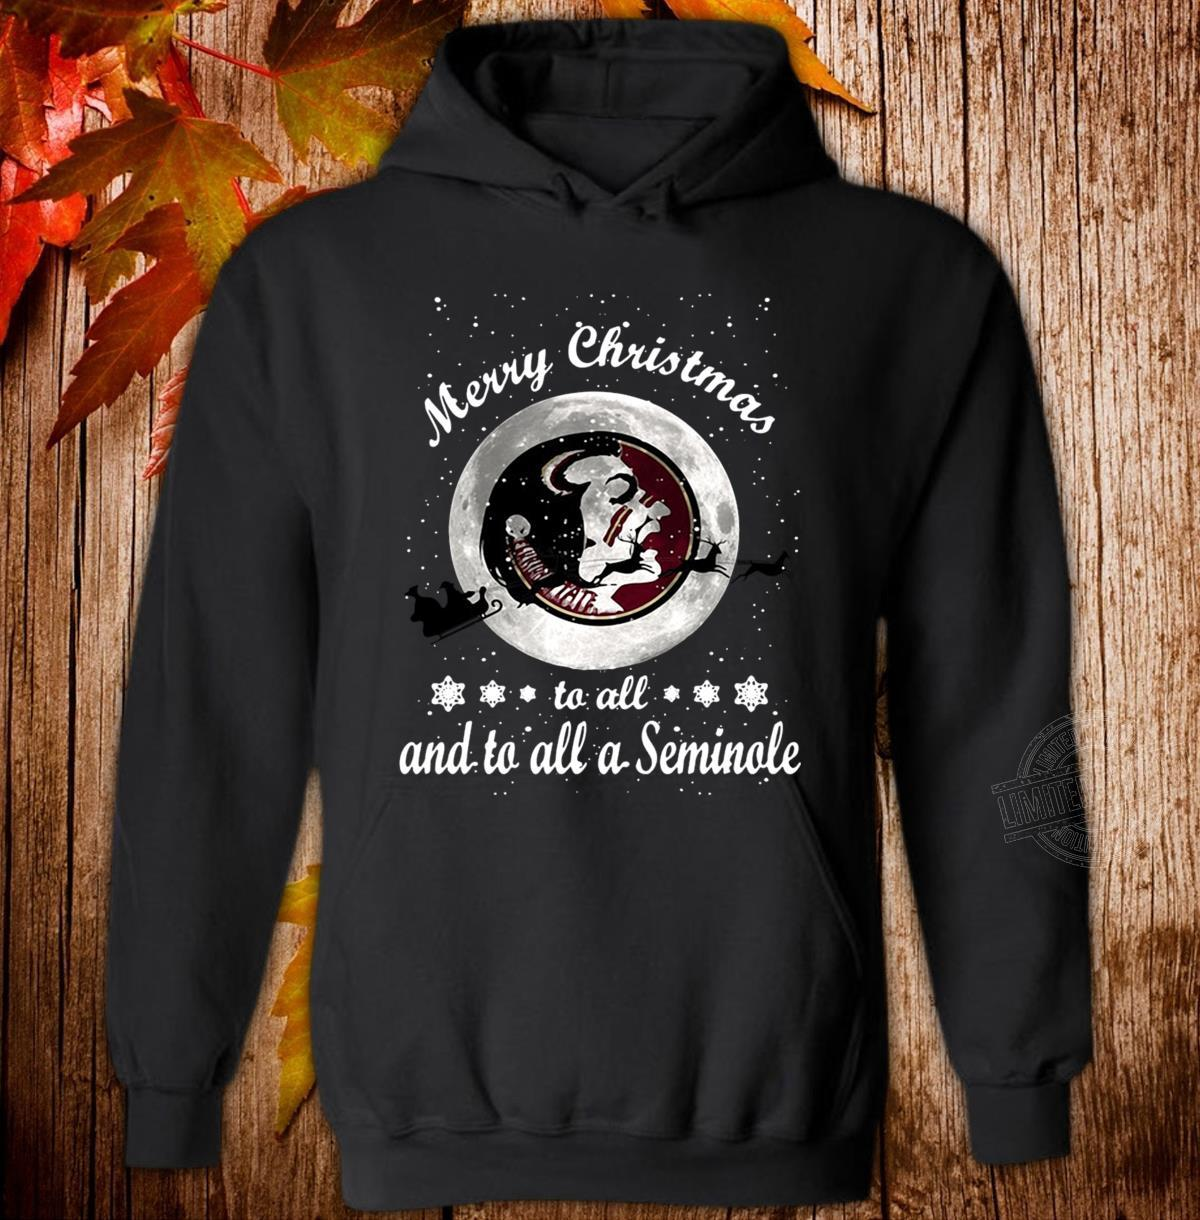 Merry Christmas to all and to all a Seminole Hoodie